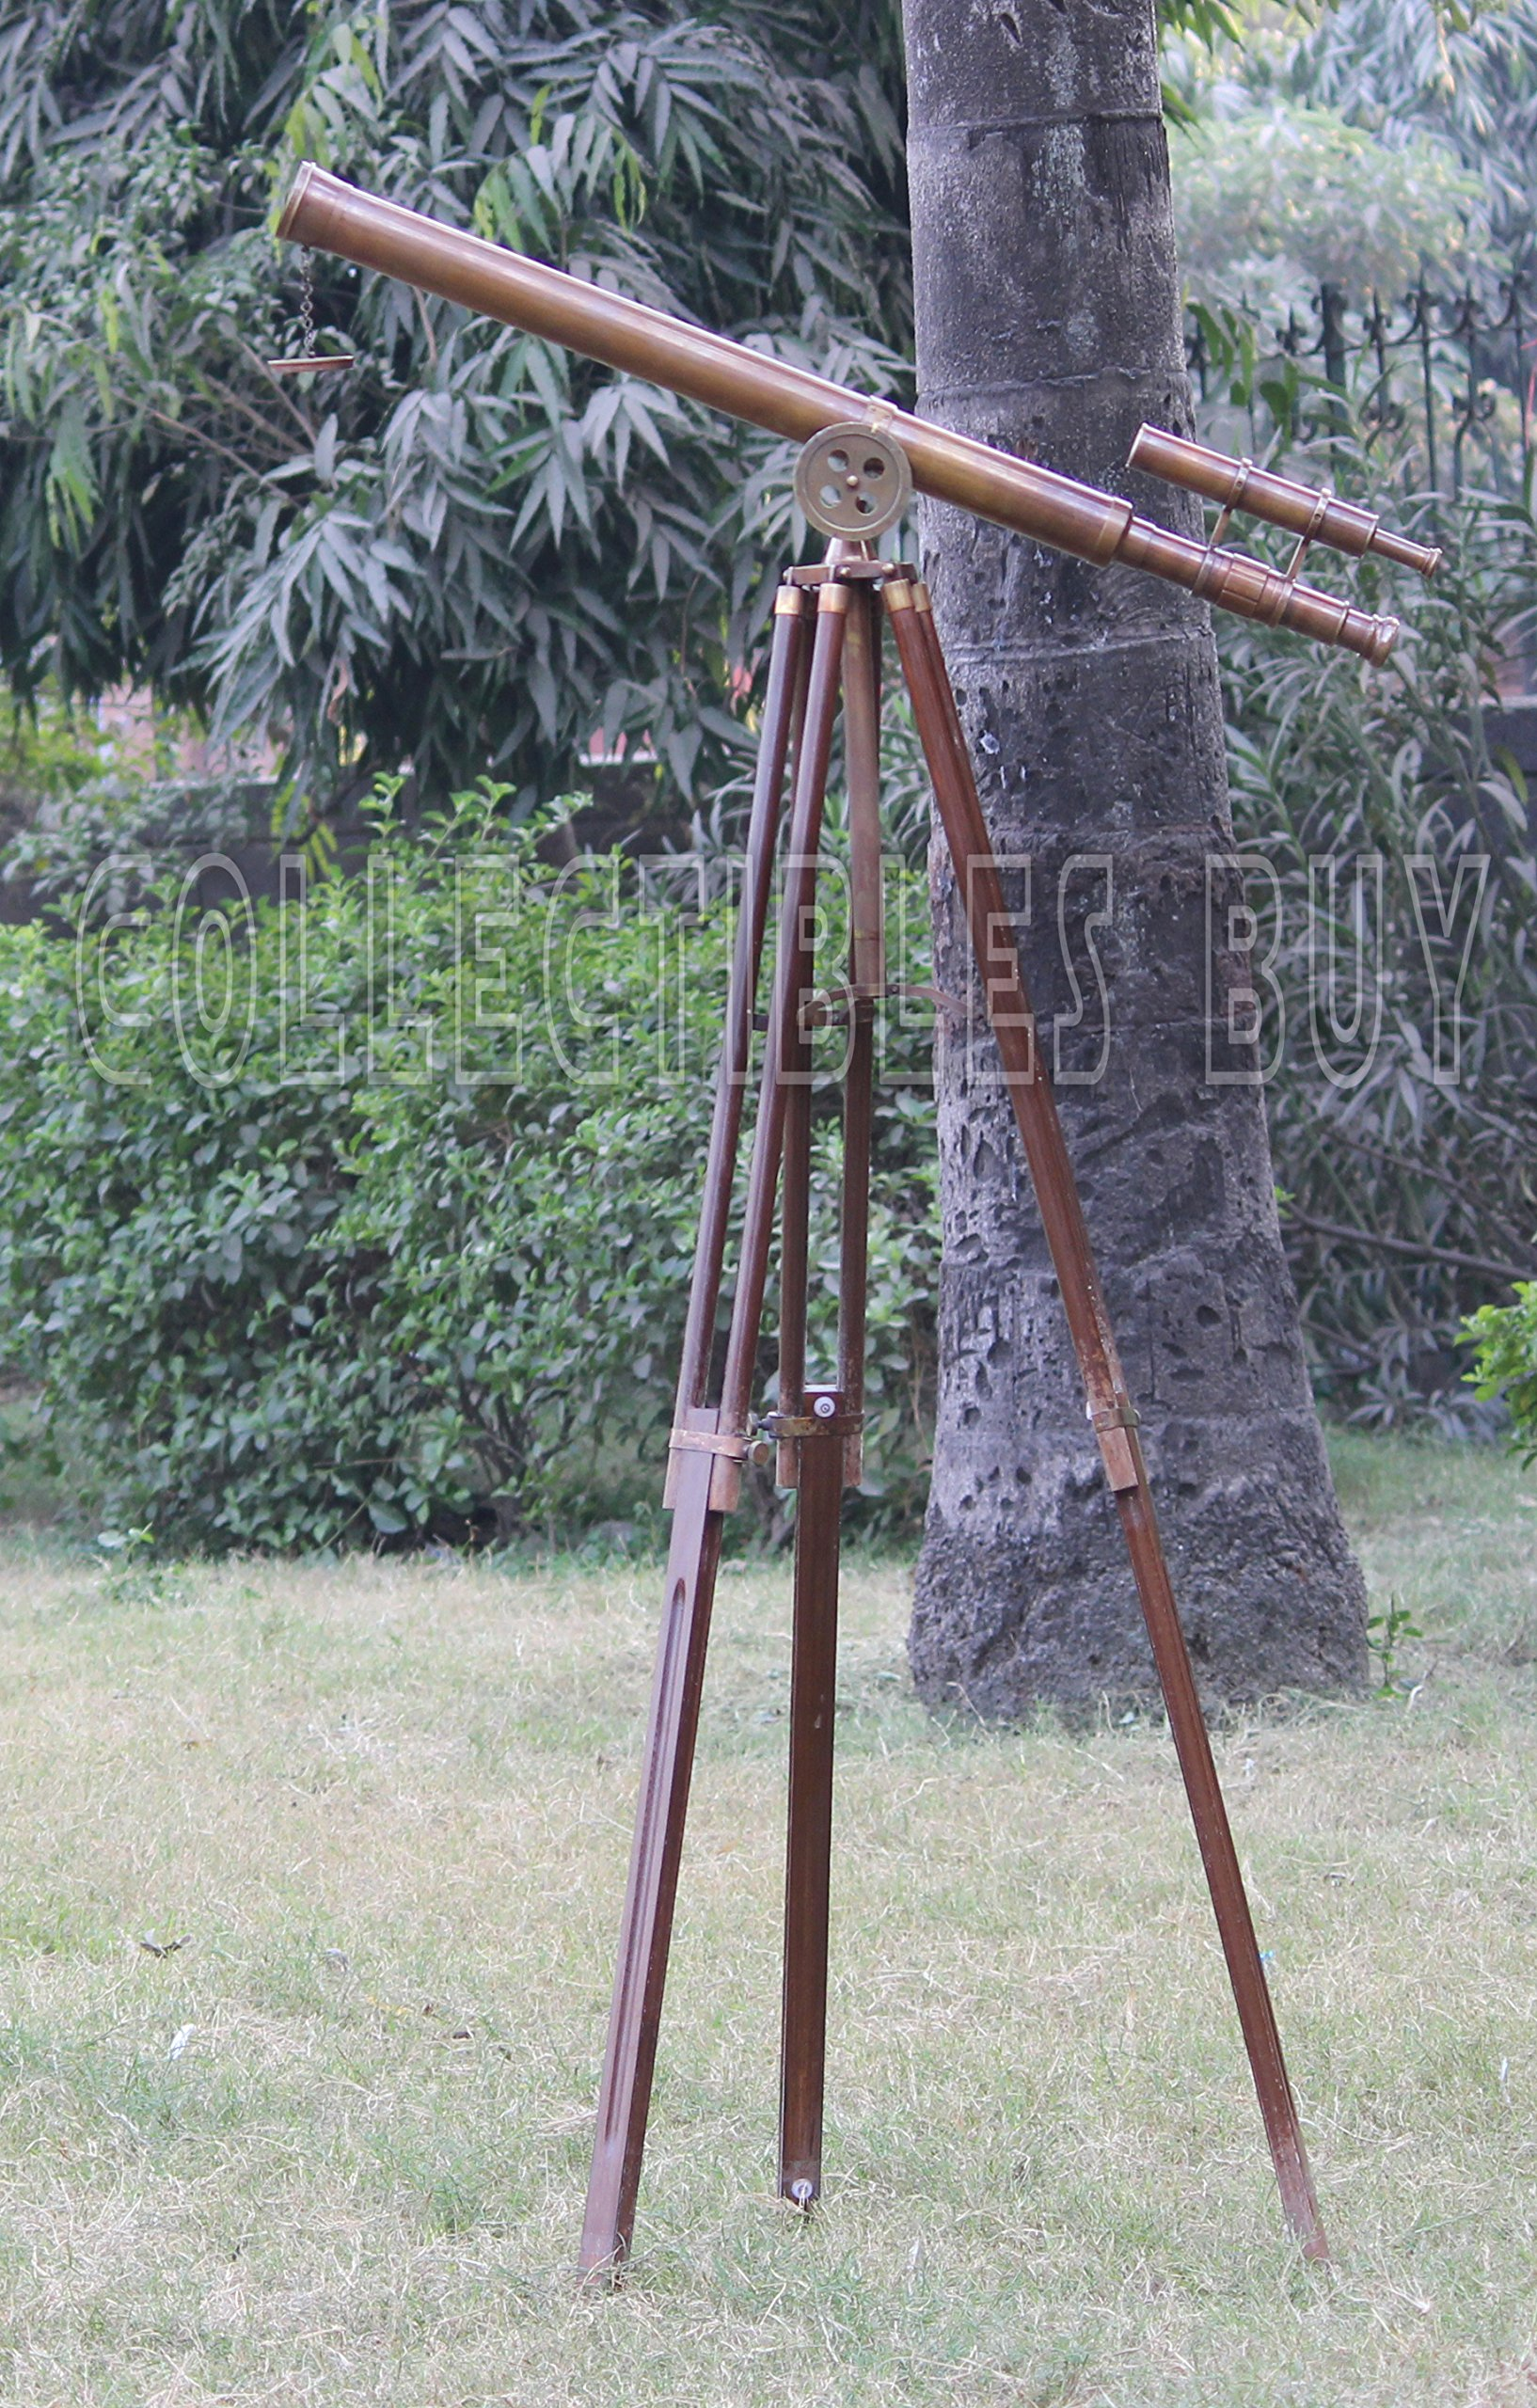 U.S. Navy Griffith Antique tripod Telescope Double Barrel Nautical Decorative